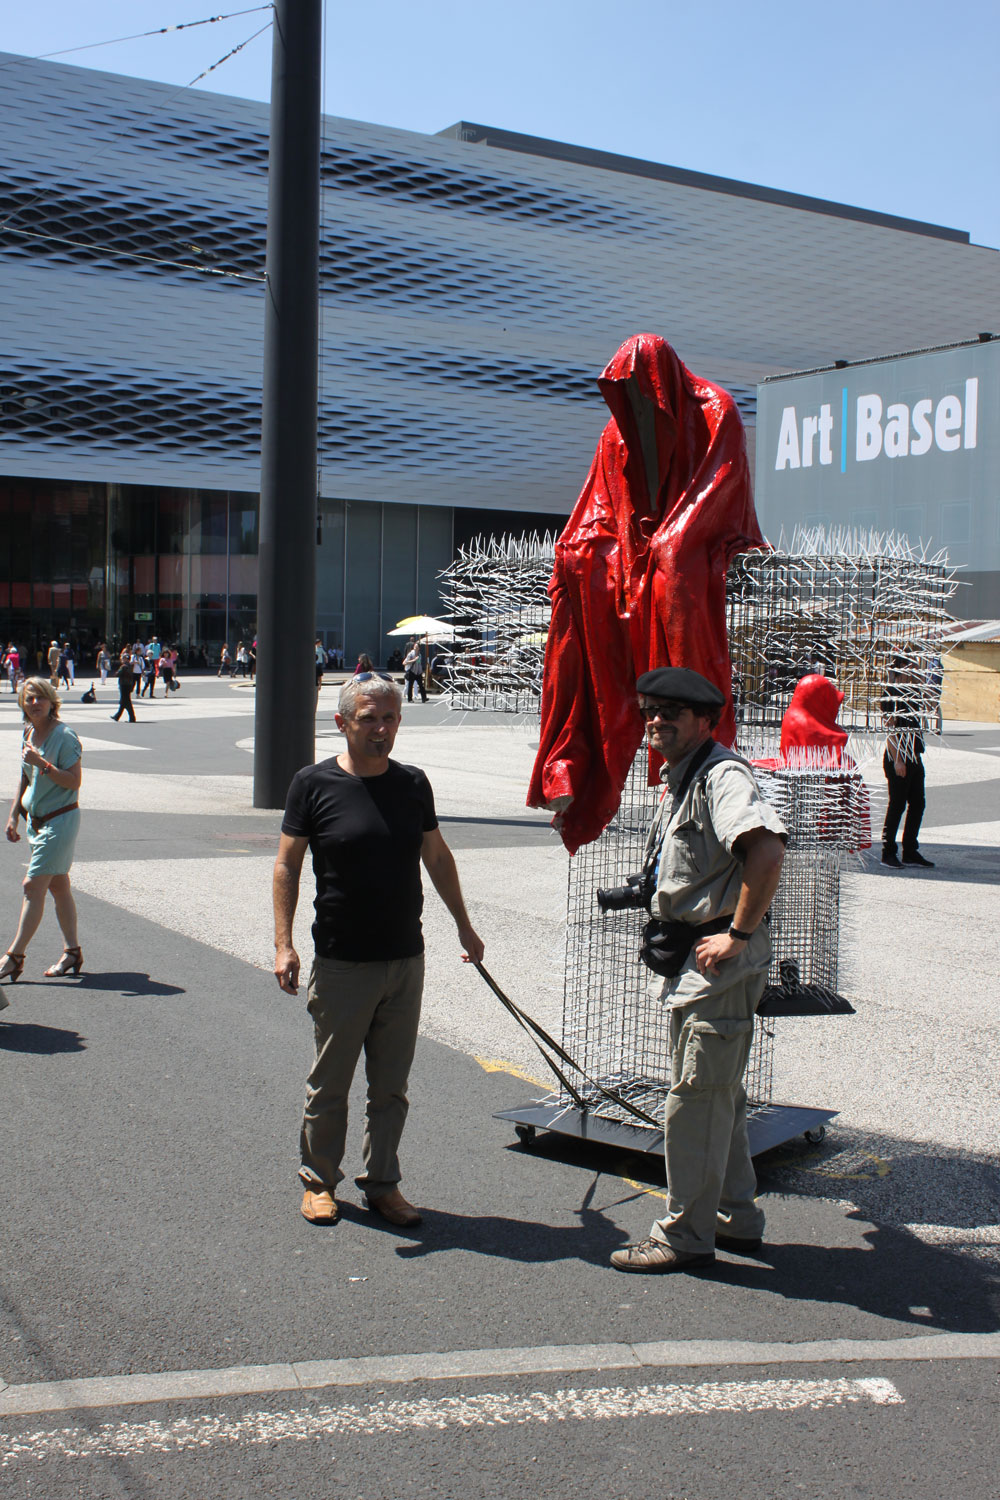 T-Guardian-scope-show-art-basel-fair-contemporary-art-sculpture-cross-manfred-kielnhofer-christoph-luckeneder-3837